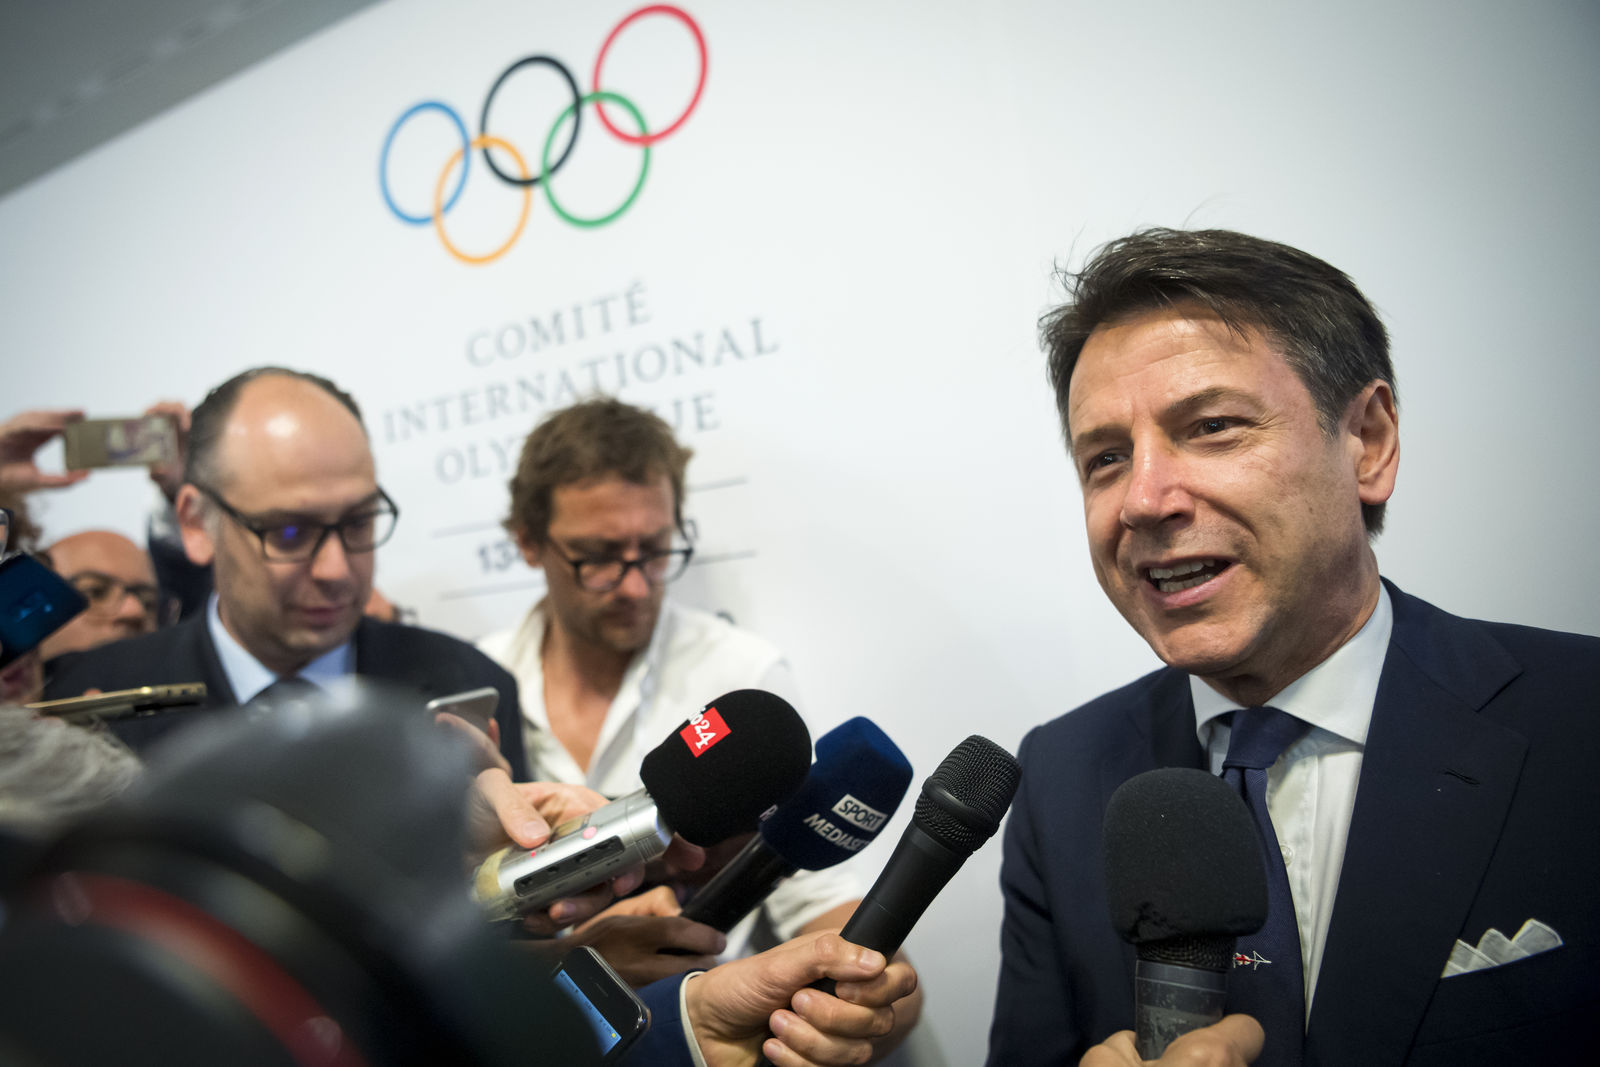 Italian Prime minister Giuseppe Conte speaks to journalists as he arrives during the first day of the 134th Session of the International Olympic Committee (IOC), at the SwissTech Convention Centre, in Lausanne, Switzerland, Monday, June 24, 2019.{ } (Jean-Christophe Bott/Keystone via AP)